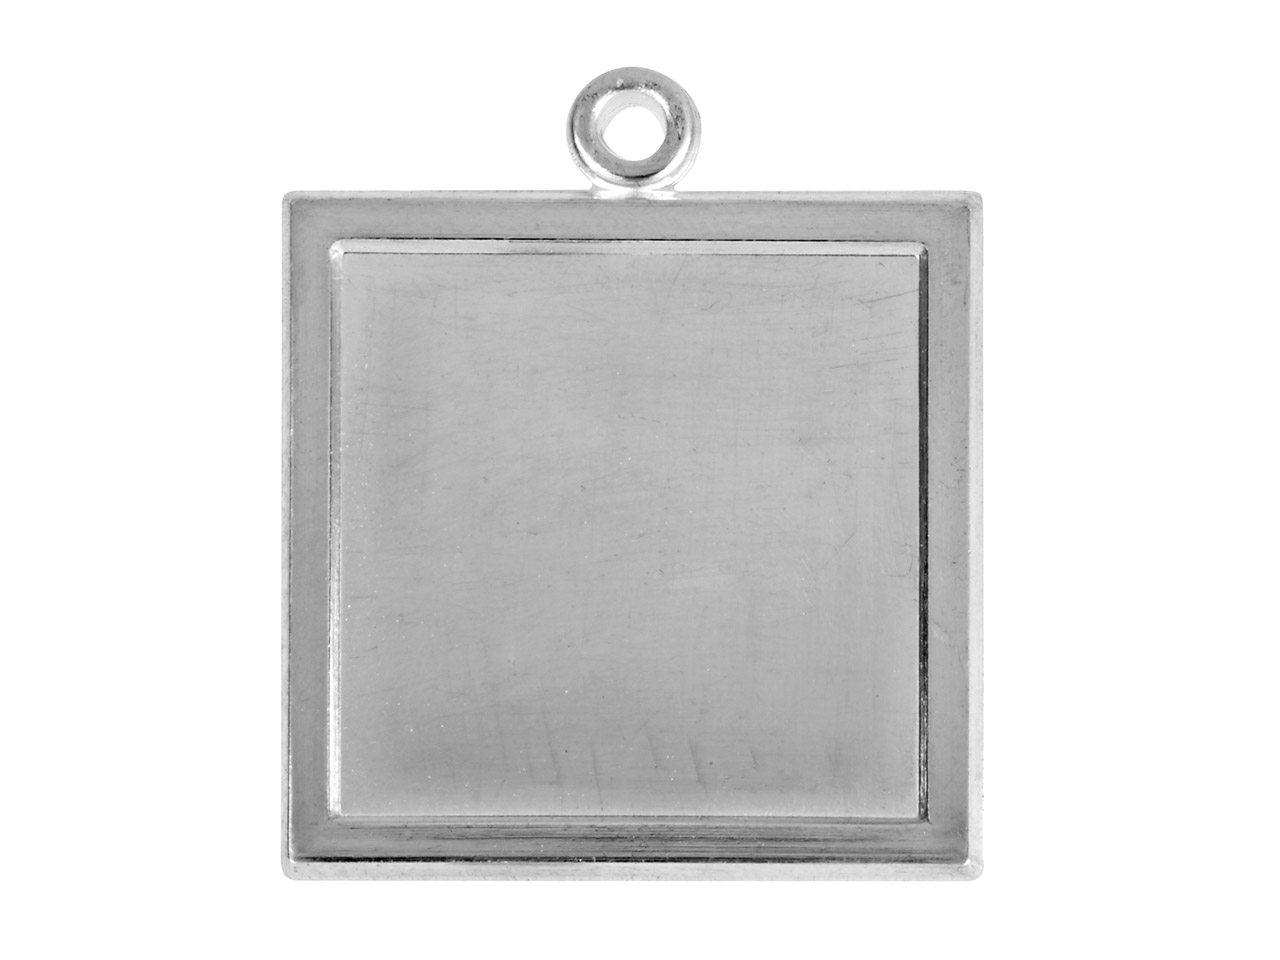 Fine Silver Pendant Cpm83 1.50mm   Fully Annealed Framed Square Blank 19mm